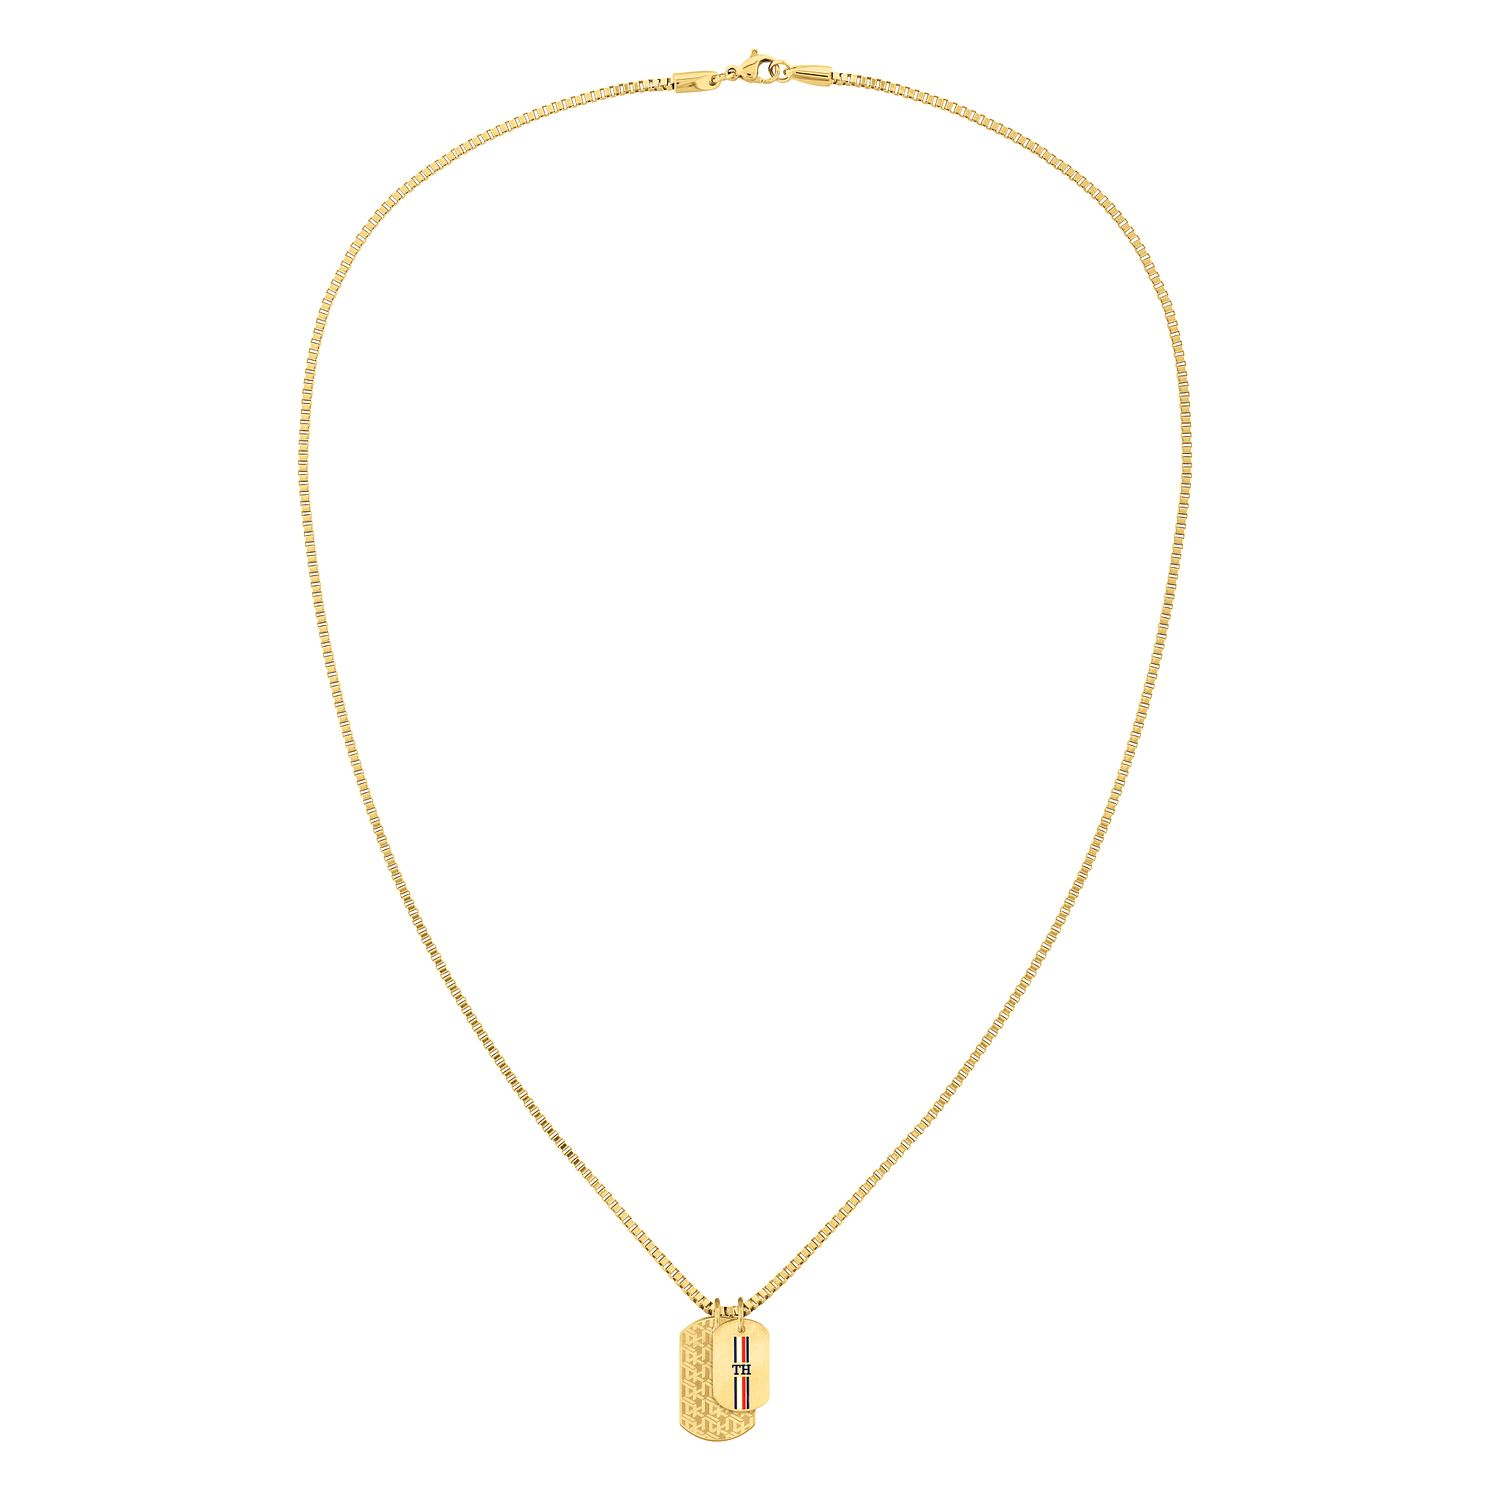 Tommy Hilfiger Yellow Gold Plated Double Dog Tag Necklace - Product number 4885910